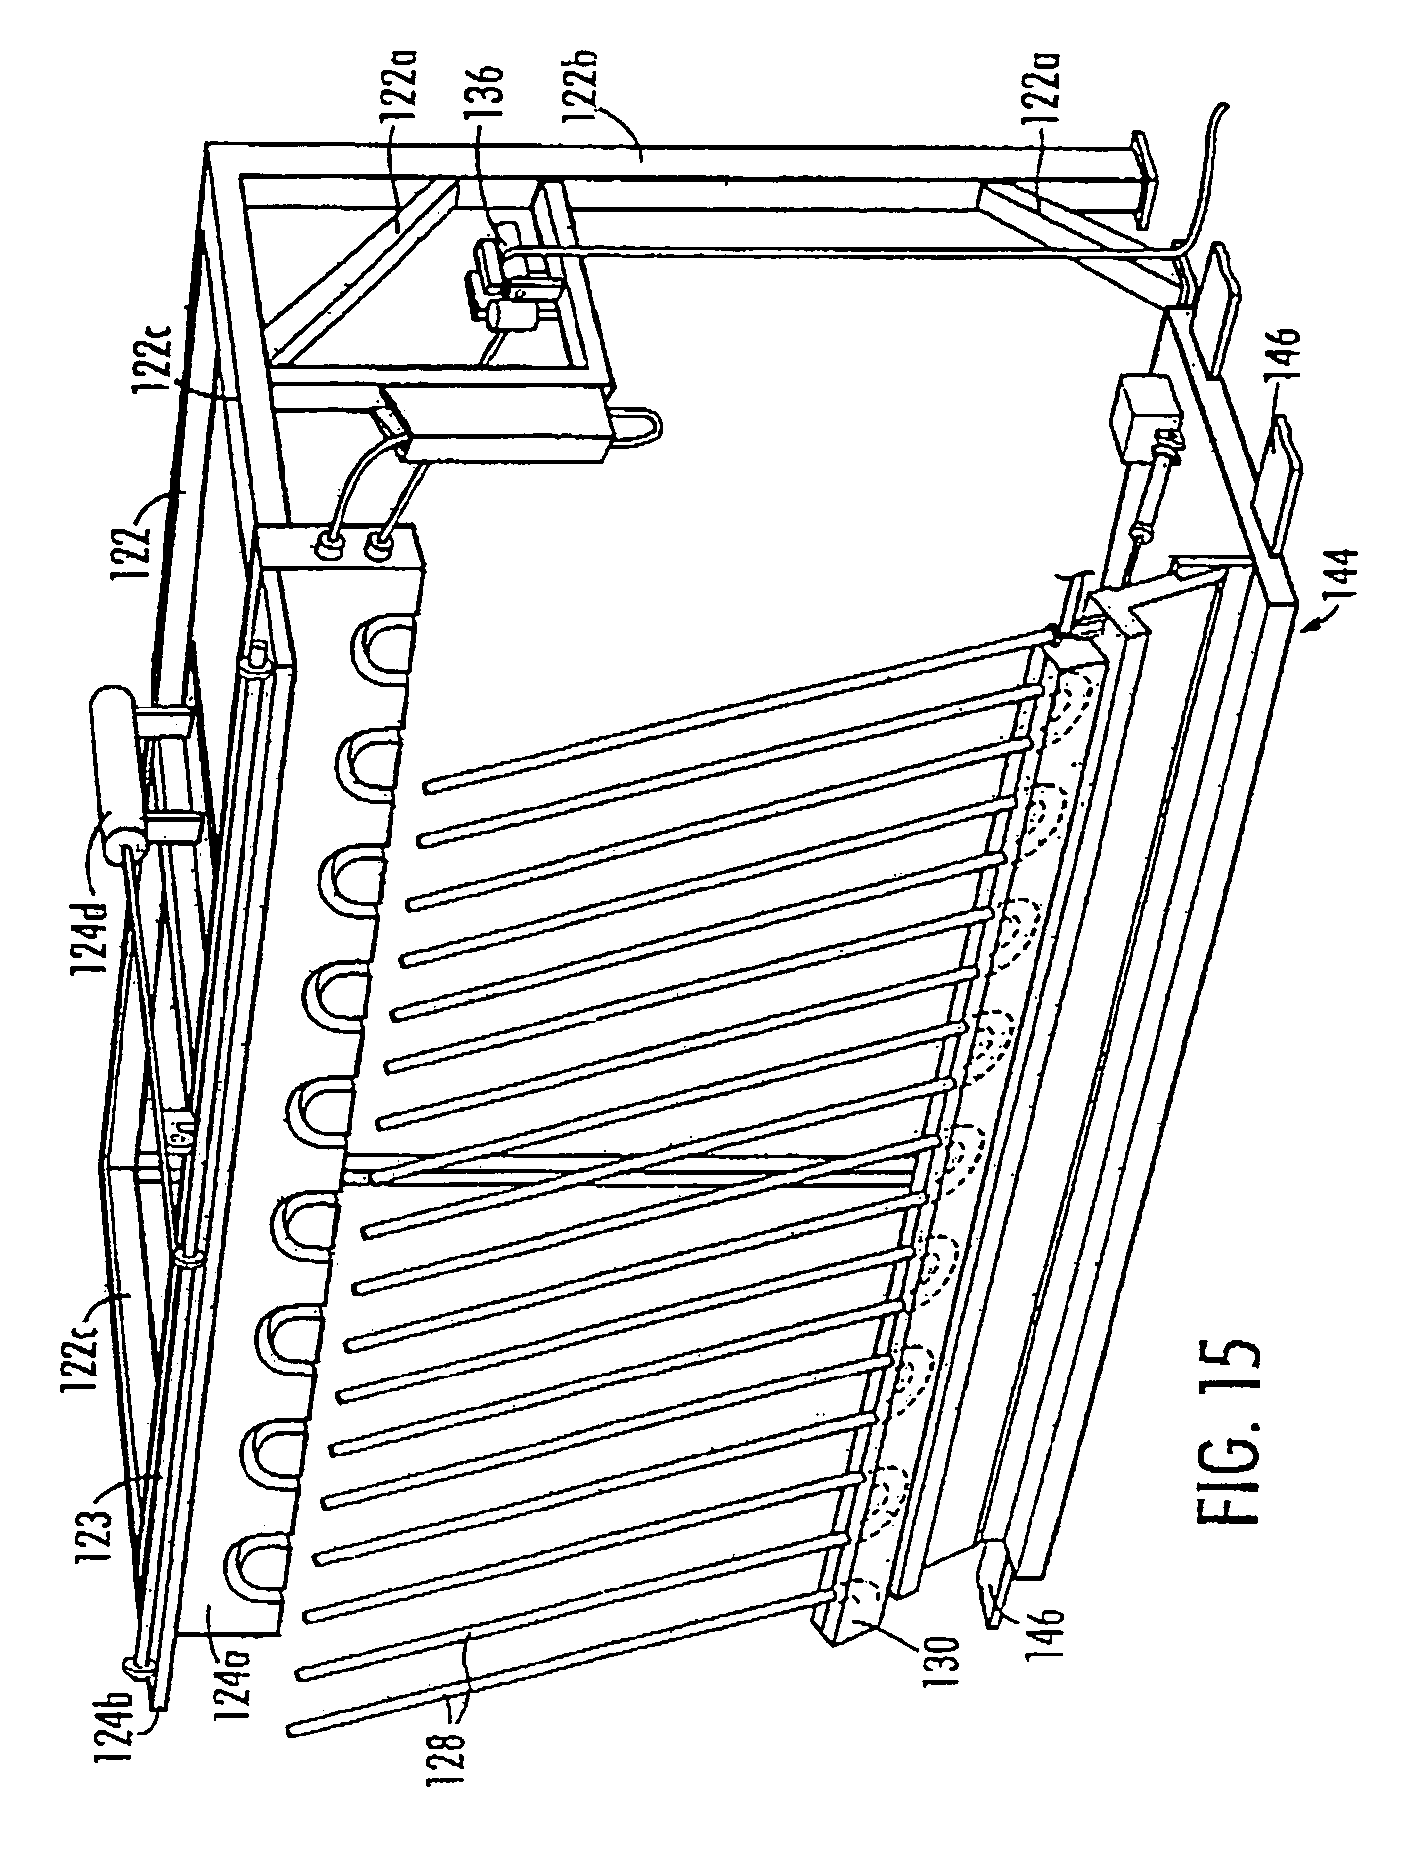 Simple Wiring Diagrams For Electrical Truck additionally Insulation Heater Blankets moreover GCIronPartsSelection as well Dual Heating Element Wiring Diagram additionally Electric Chair Blanket. on wiring diagram electric blanket